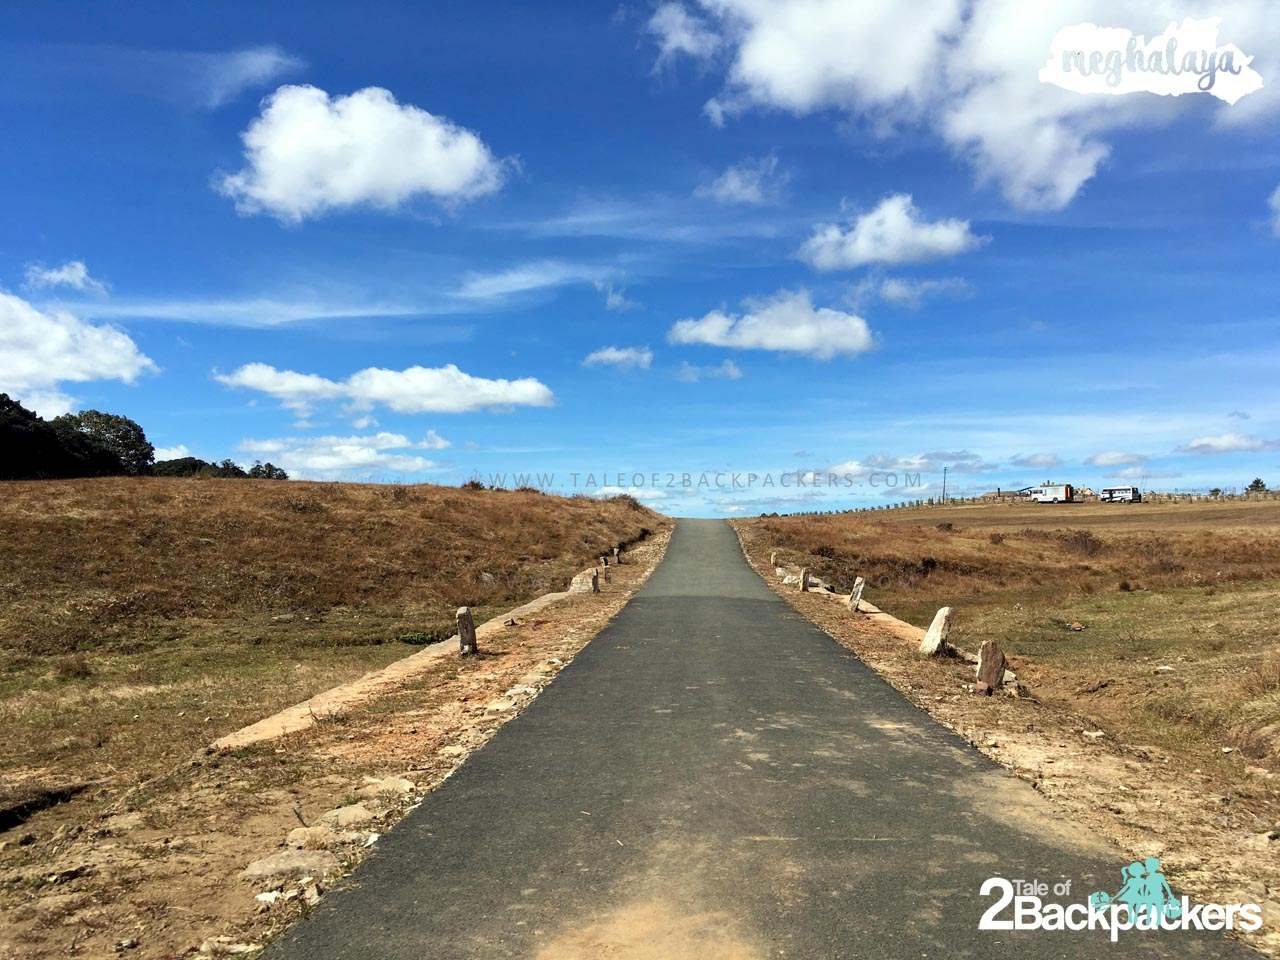 Meghalaya roads are in quite good condition except the interior ones. Perfect for a bike trip or car trip